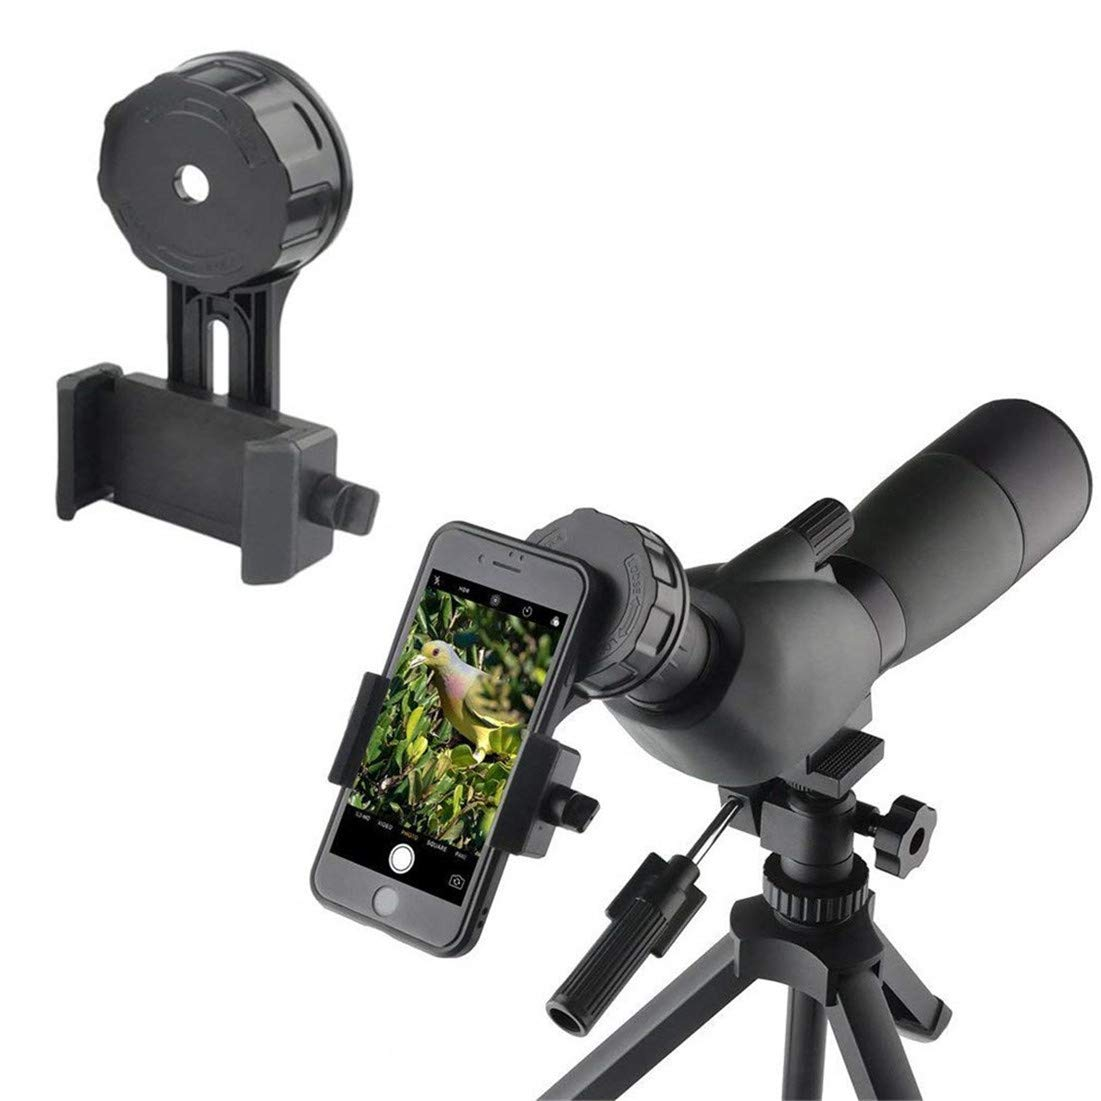 Universal Cell Phone Quick Photography Adapter Mount for Smartphone Camera,compatible with Binoculars Monocular Spotting Scopes Telescopes and Microscopes